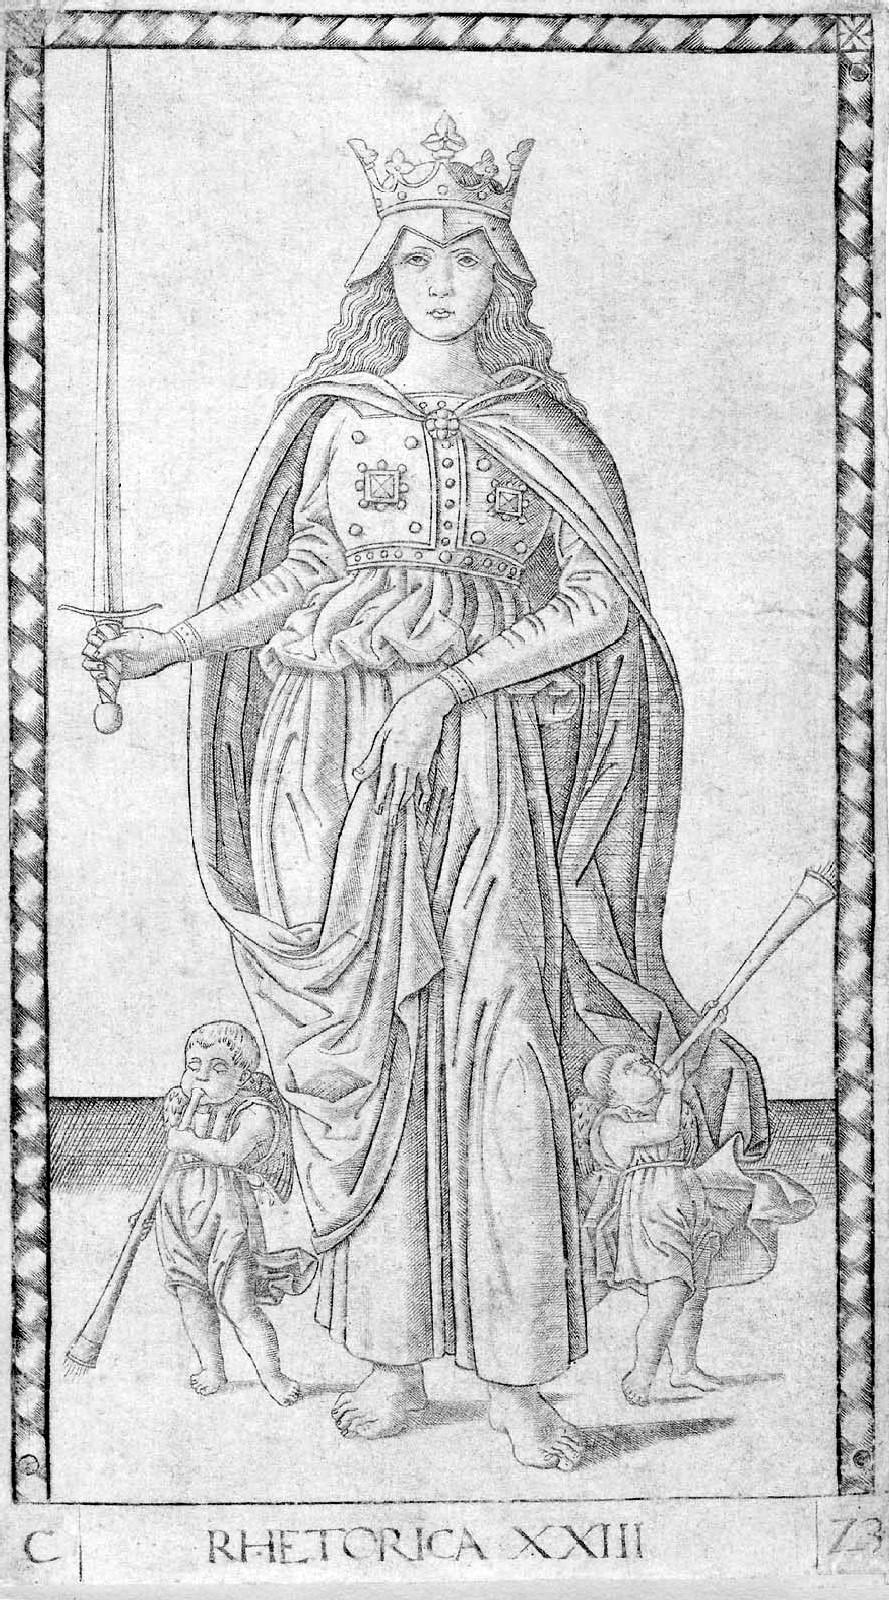 "Picture of Rhetorica, the personification of rhetoric, as a ""martial and regal"" figure (quoting Michele Kennerly and Carly S. Woods in ""Moving Rhetoric,"" in Rhetoric Society Quarterly, 2017). Picture citation: Mantegna Tarocchi, no. 23; from Wikimedia."